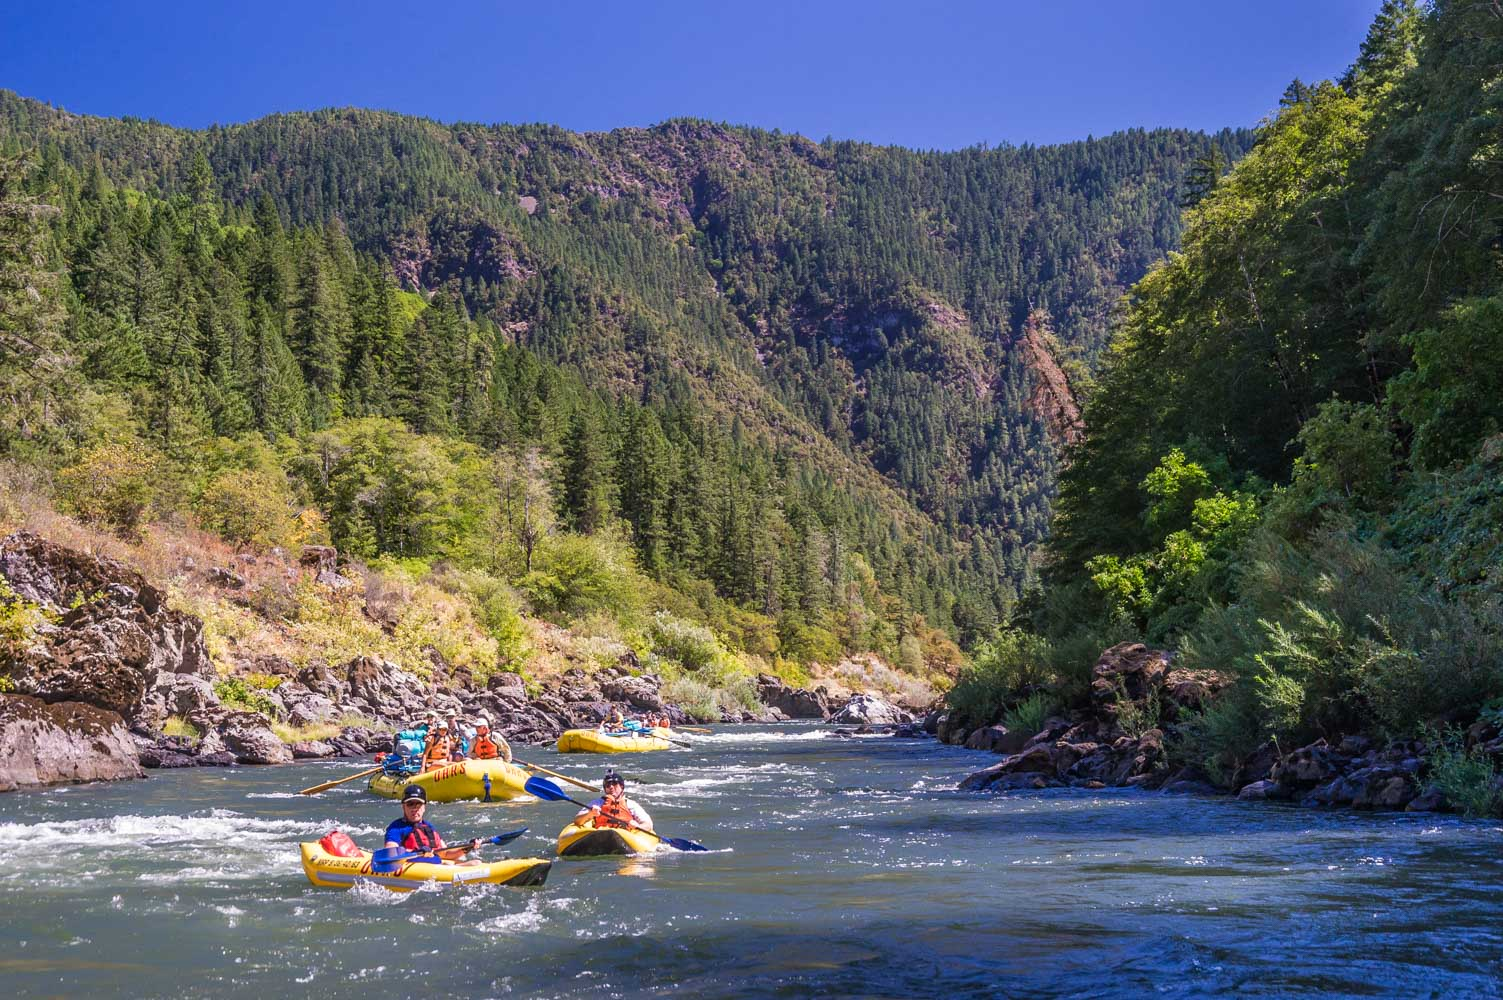 rogue river single personals Rogue river, or intent is actively seeking a relationship profession retiredfrom fireman engineer business owner-operator mercha height 5'10 (178 cm) education.